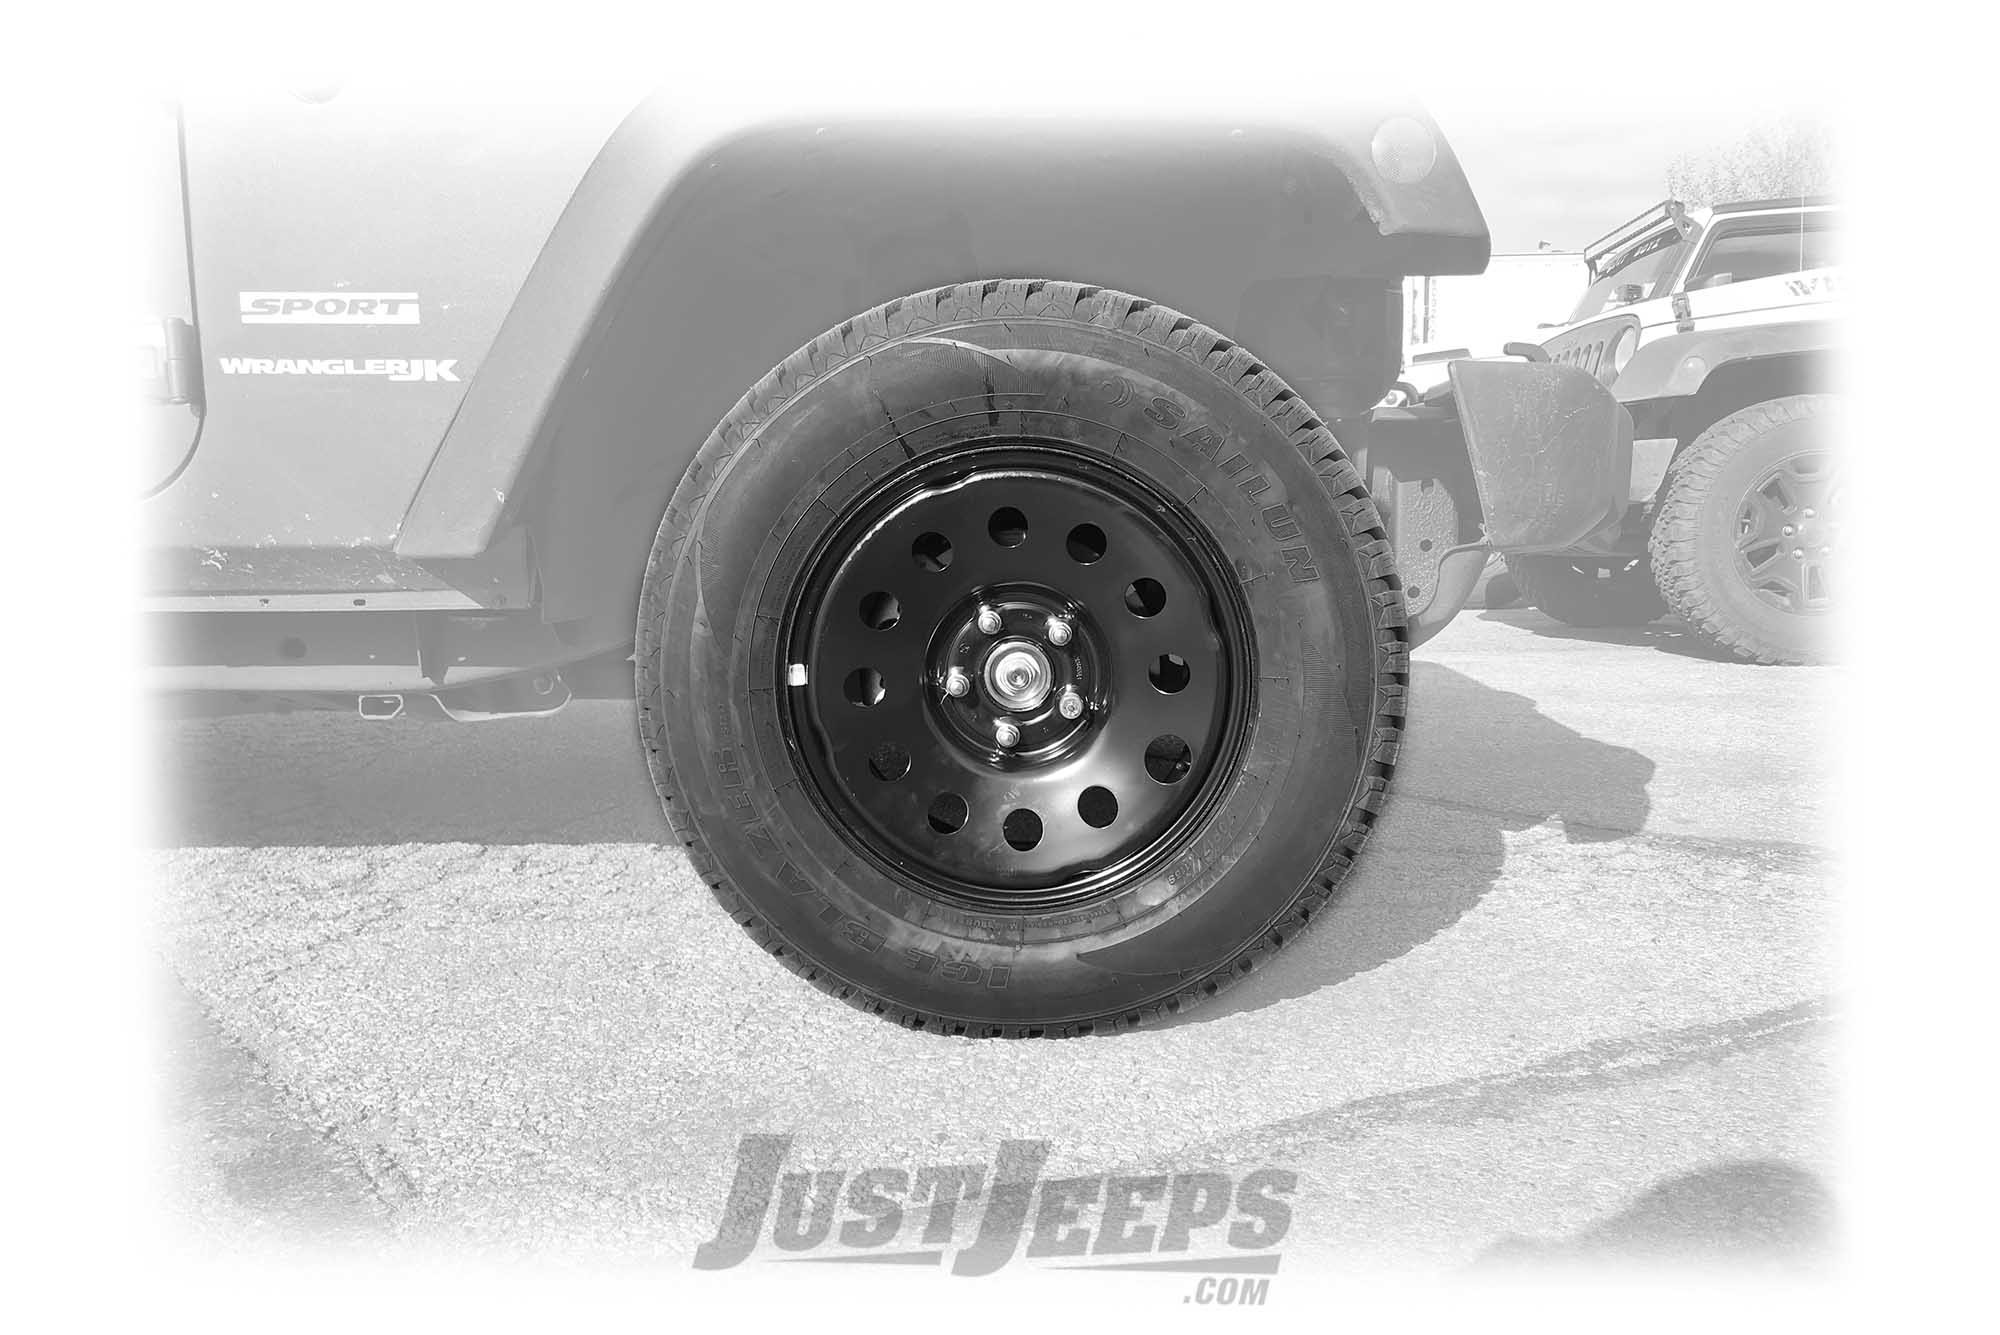 "Just Jeeps 17"" Winter Tire Package with Black Steel Wheels 265/70R17 For Jeep Wrangler JK"